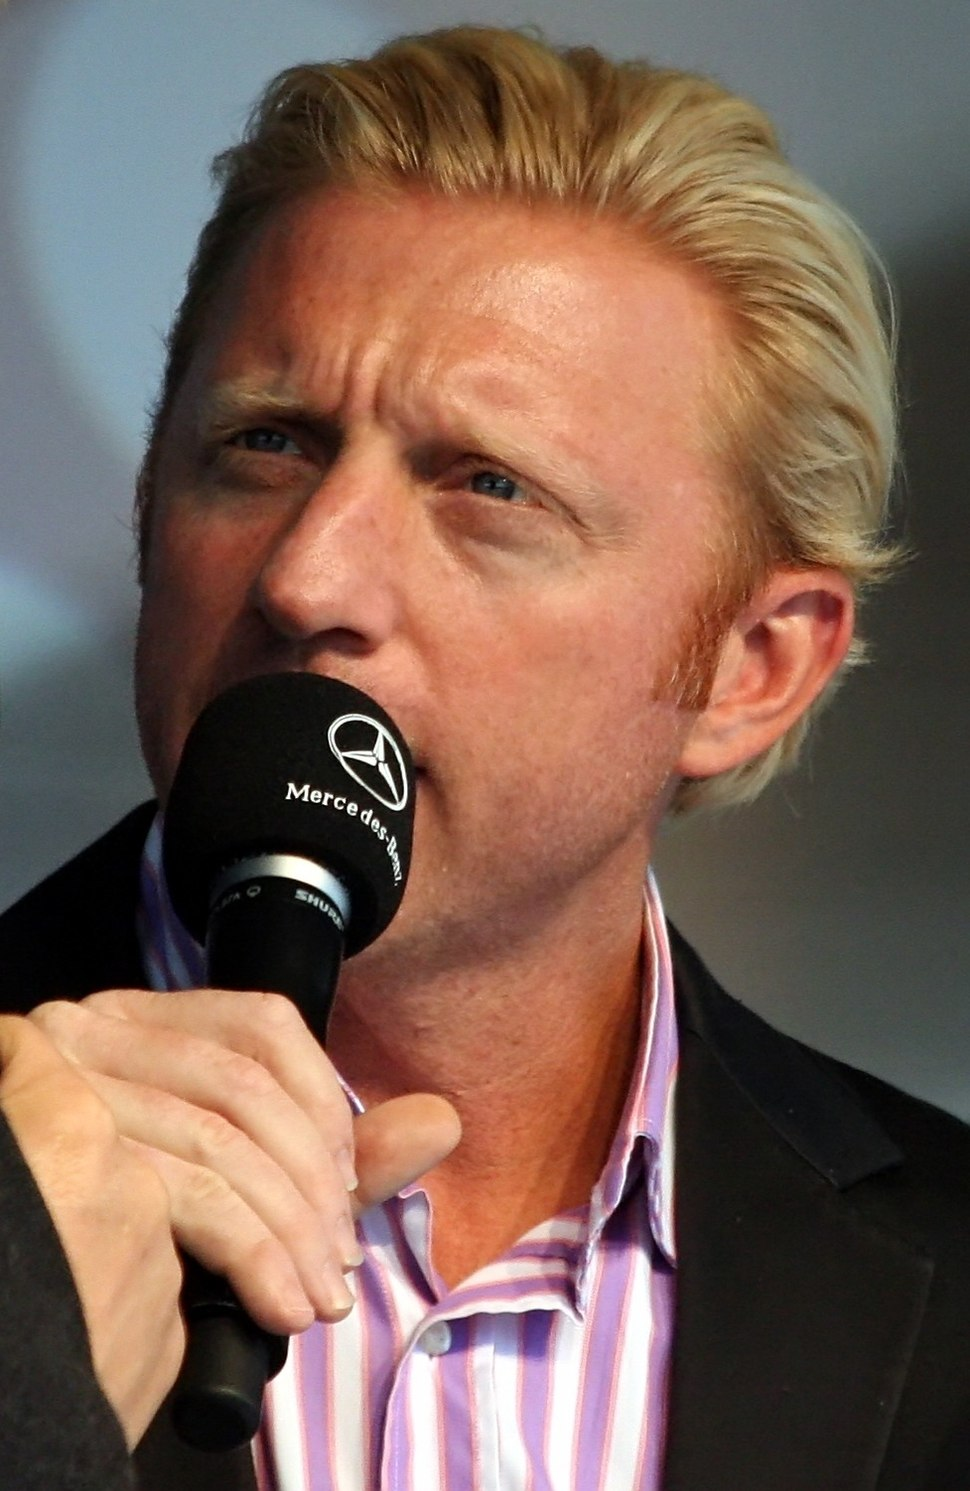 Boris Becker 2007 amk